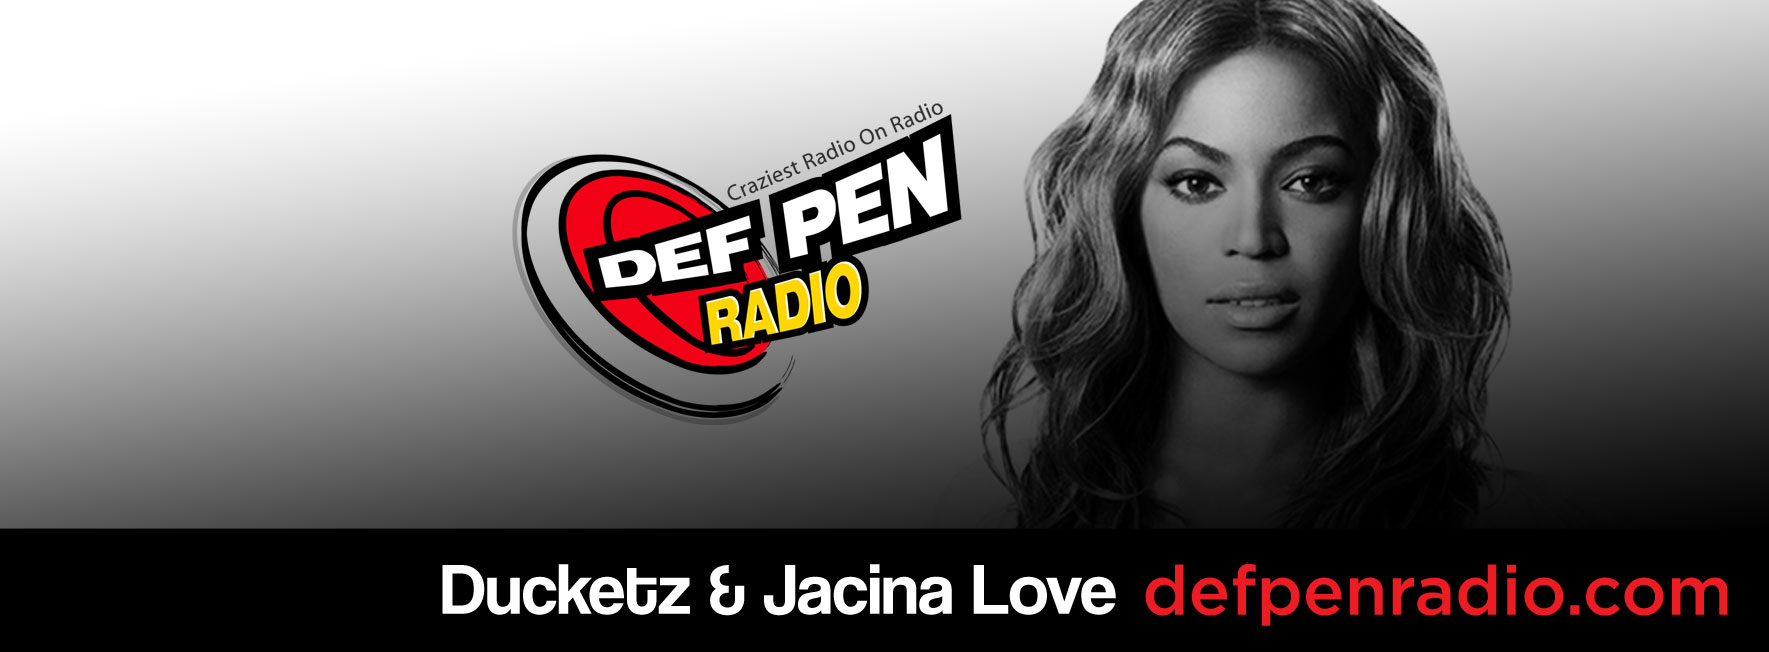 Facebook Header / Def Pen Radio